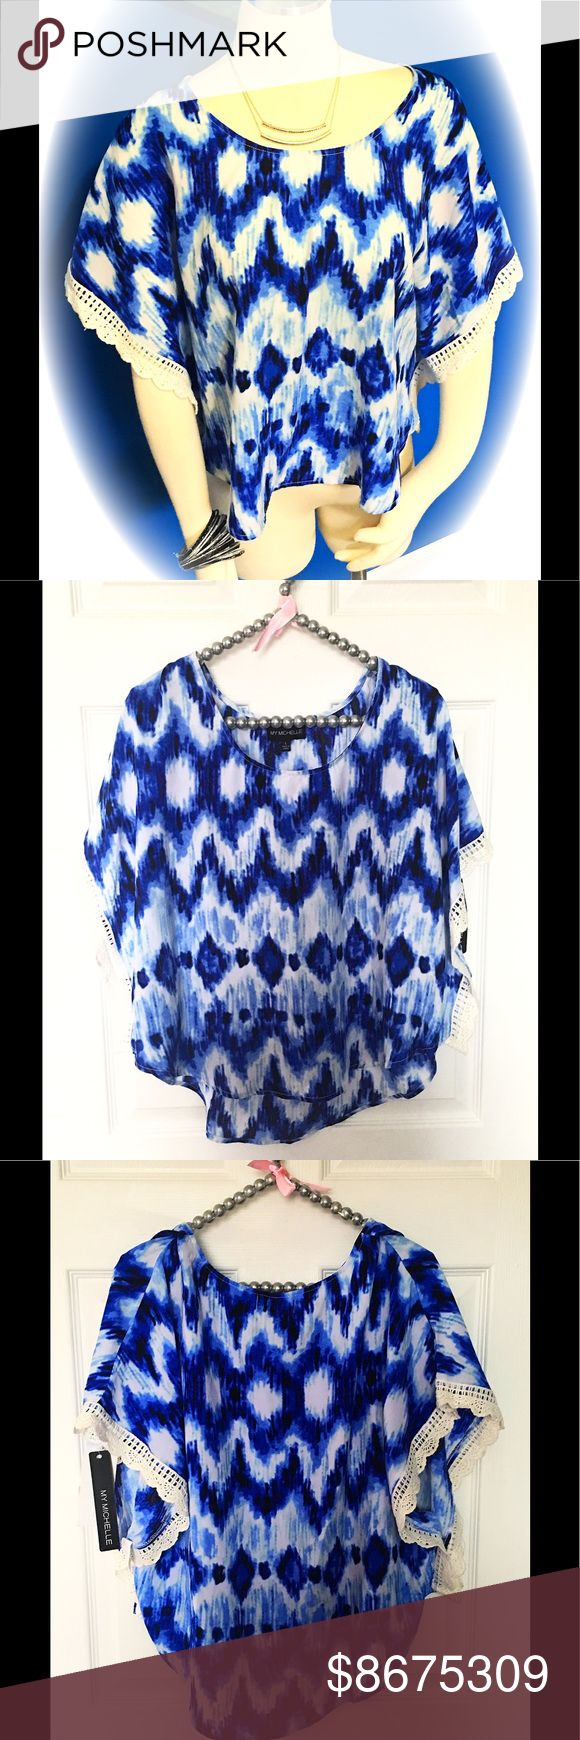 NWT ~ Waterfall Blues Top Size Large NWT ~ Waterfall Blues Top Size Large...A breathtaking top that radiates all the beautiful colors the sky has to offer. Short batwing cut sleeves embellished with dainty lace trim. This beauty would look amazing with white Capri style pants and a comfy pair of Keds. 🚫Trades🚫ⓅⓅ Make an offer 🌞 My Michelle Tops